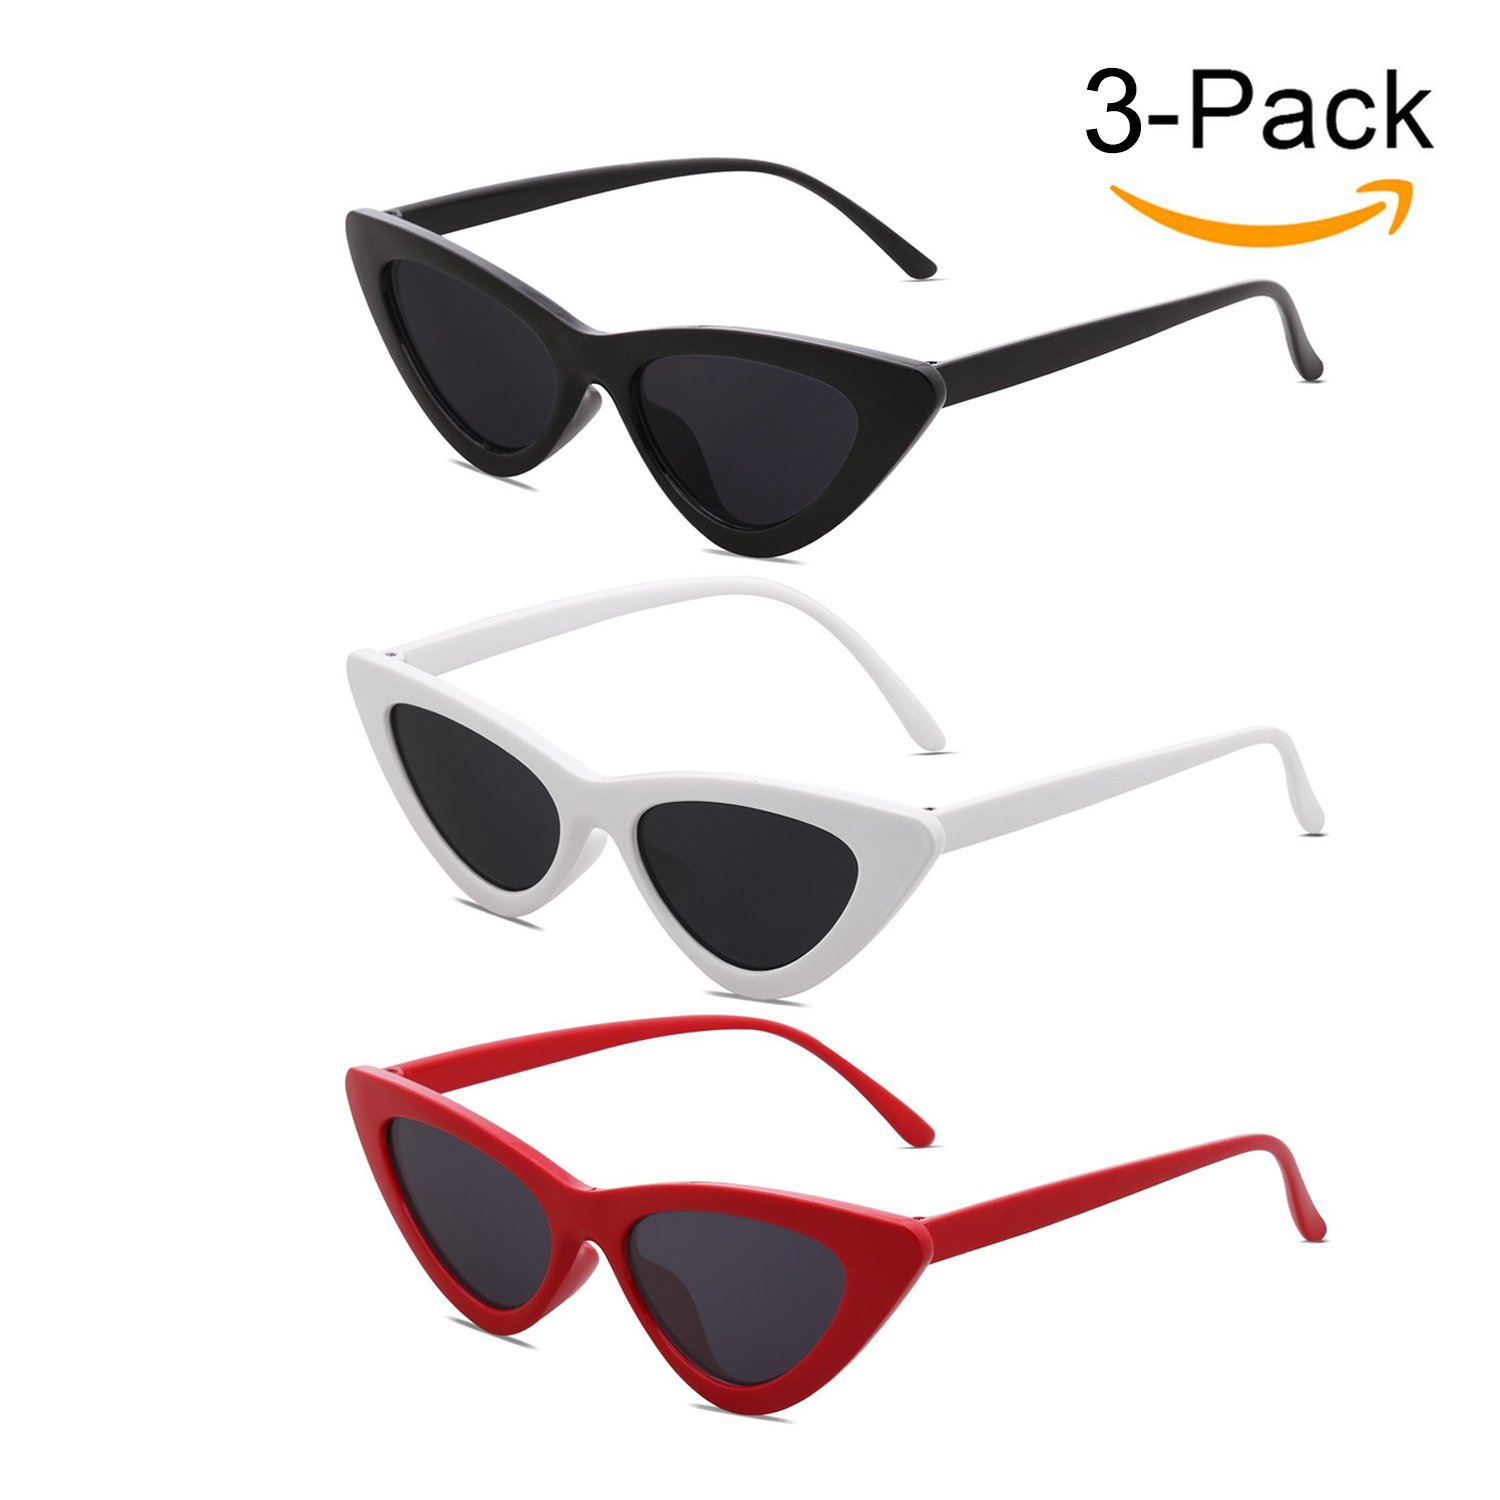 Kids Cat Eye Sunglasses for Girls Children Age 3 to 10 Retro Clout Goggles, Ideal Gift for Kids, Mother & daughter Matching Style - Set of 3 White & Black & Red